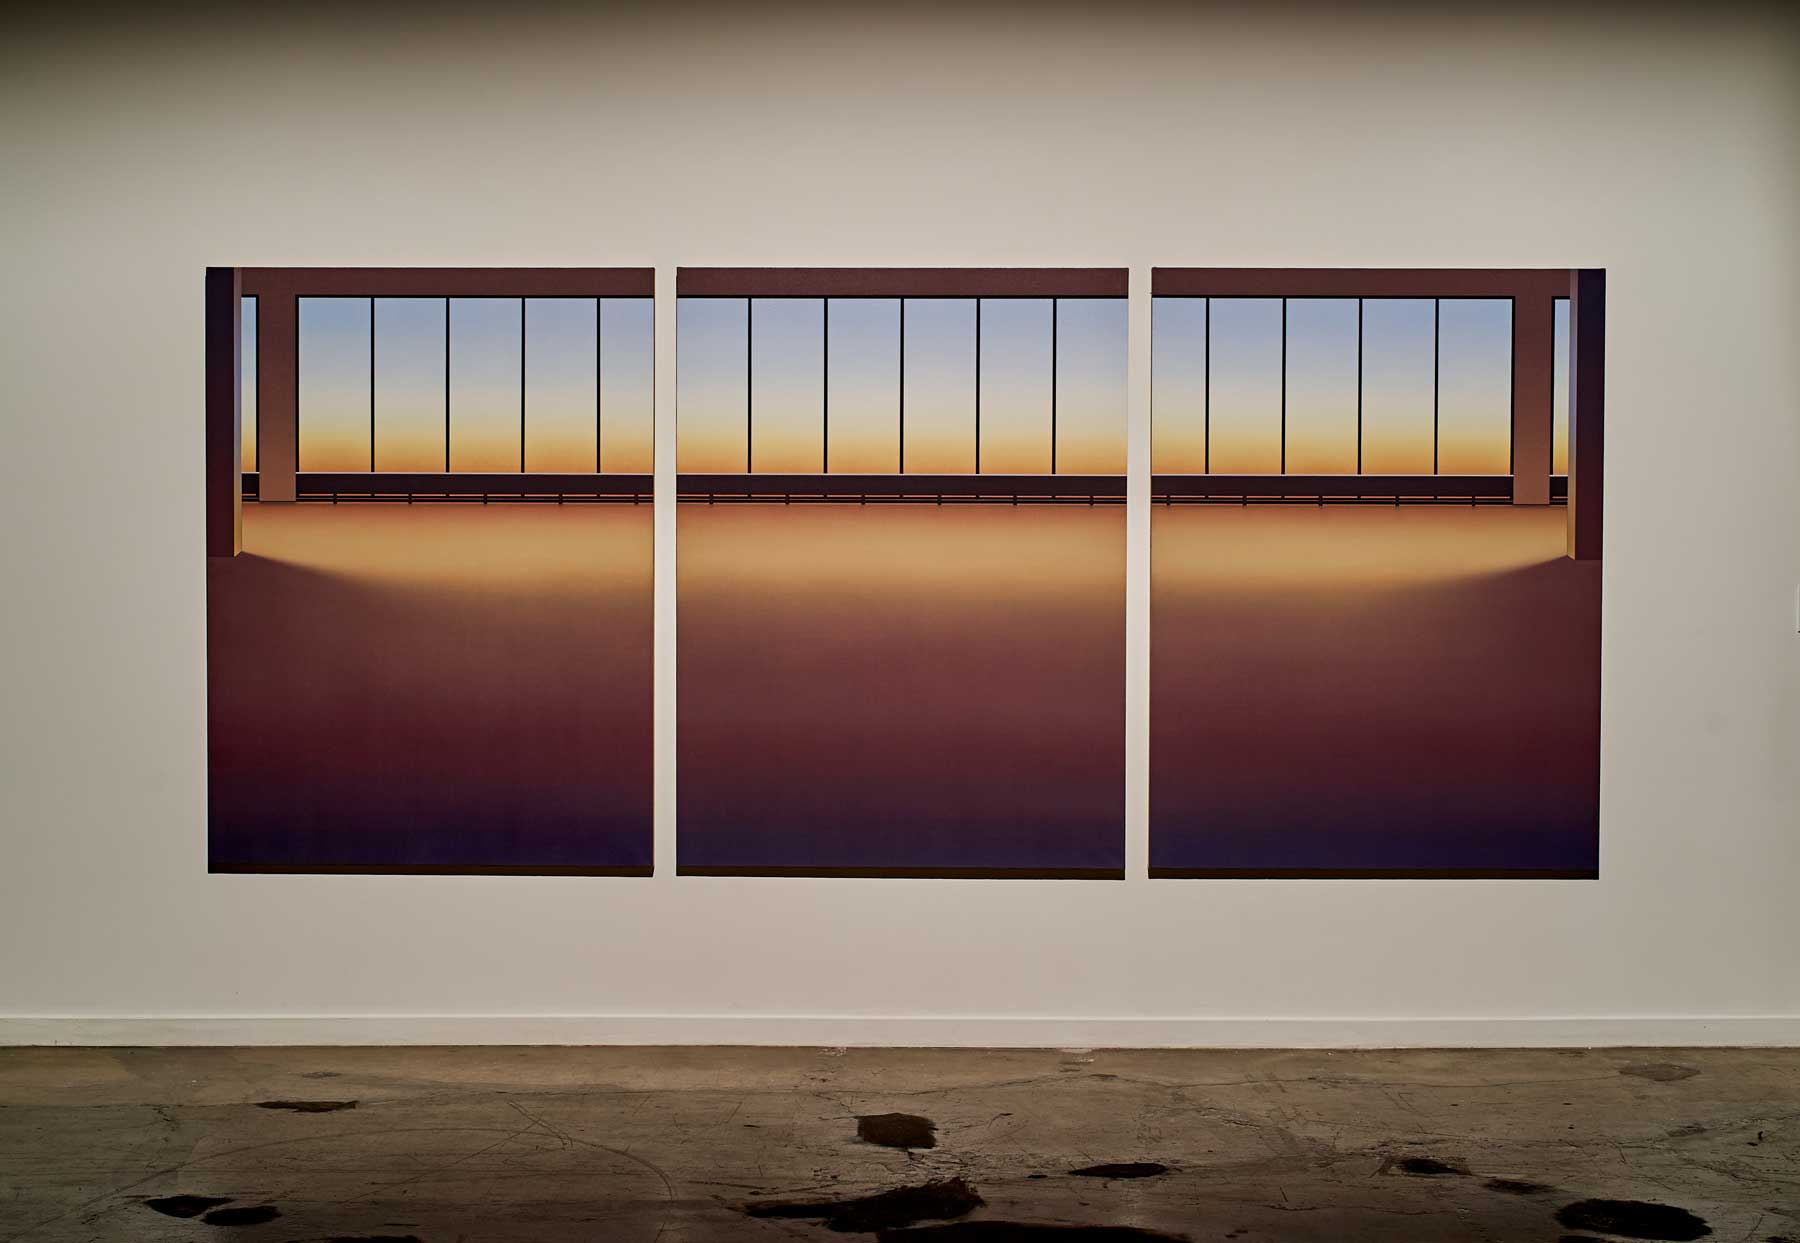 "Pierre Dorion ,  Vitrines (5445 de Gaspé) , 2017, Oil on linen canvas, 72"" x 170 1/4"" (182,88 x 432,44 cm). Photo credit: Romain Guilbault"